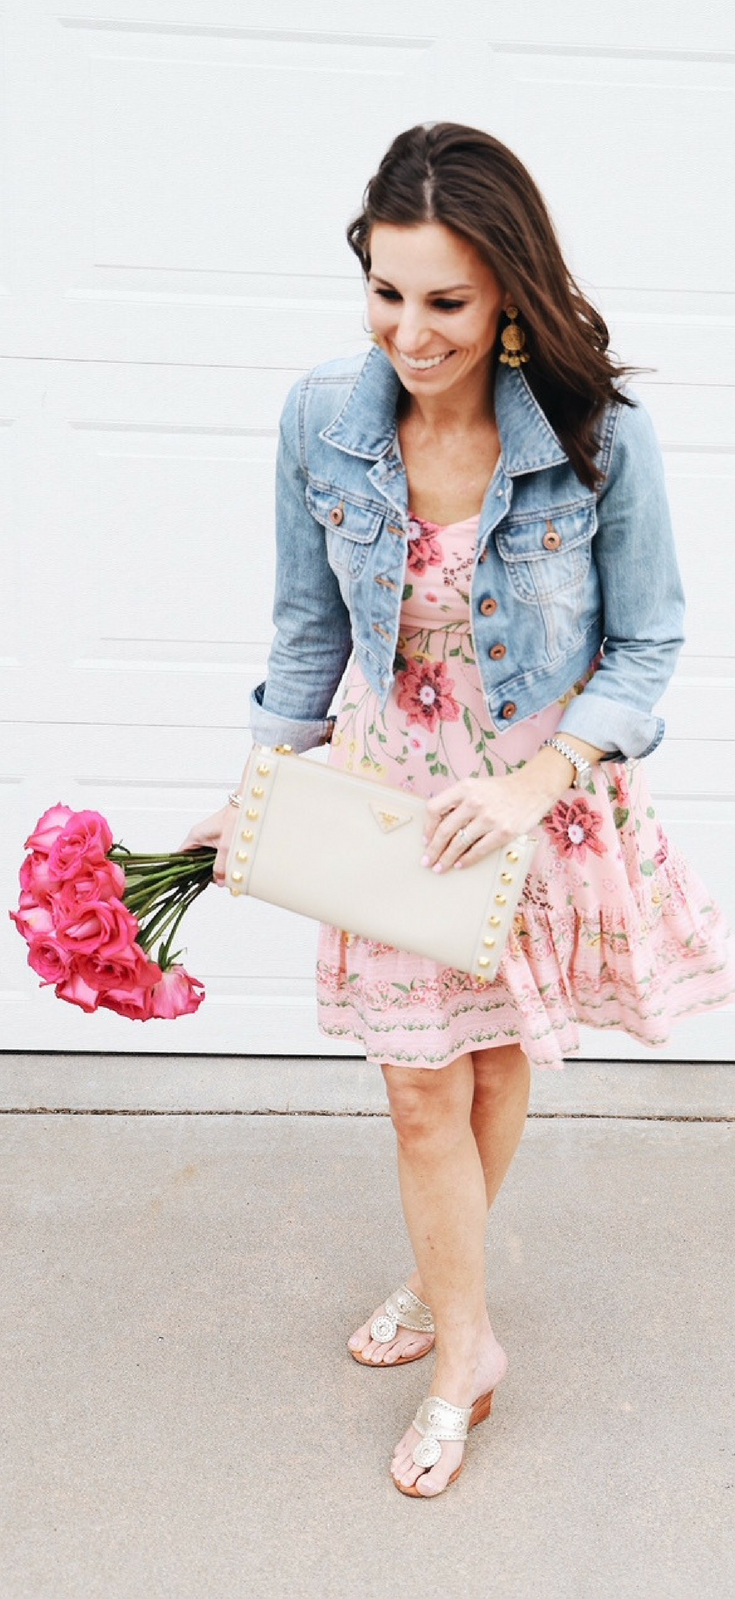 72df3323505 Pink Floral Dress // Spring Fashion // tinystampede.com Denim Jacket With  Dress